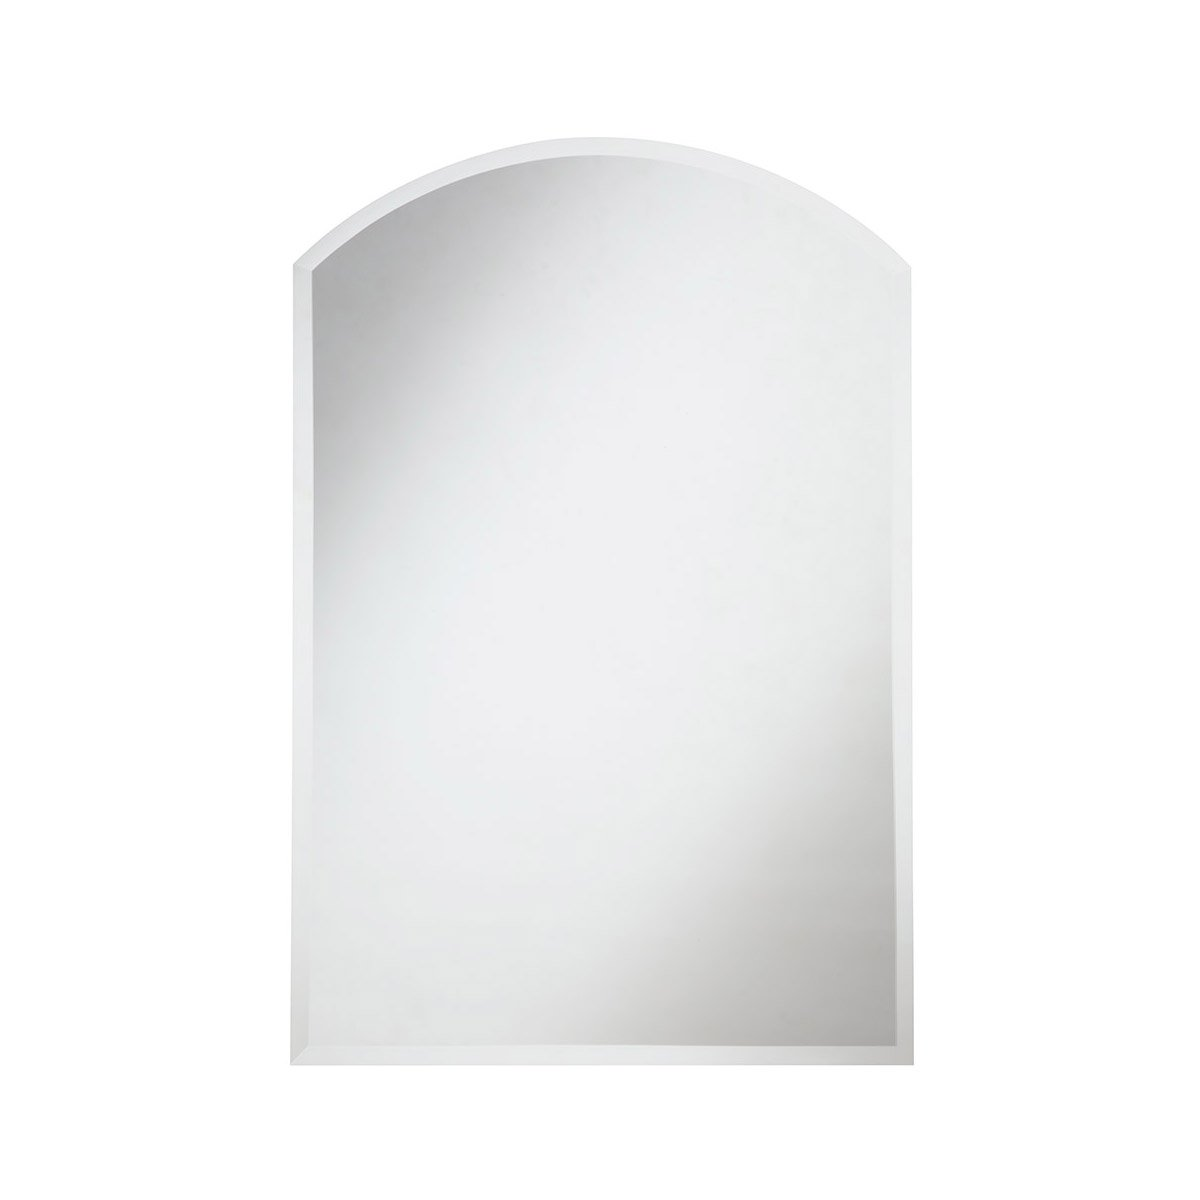 Modern 22 X 32 Contemporary Mirror - Clear Finish (Mr-4015) Mirror